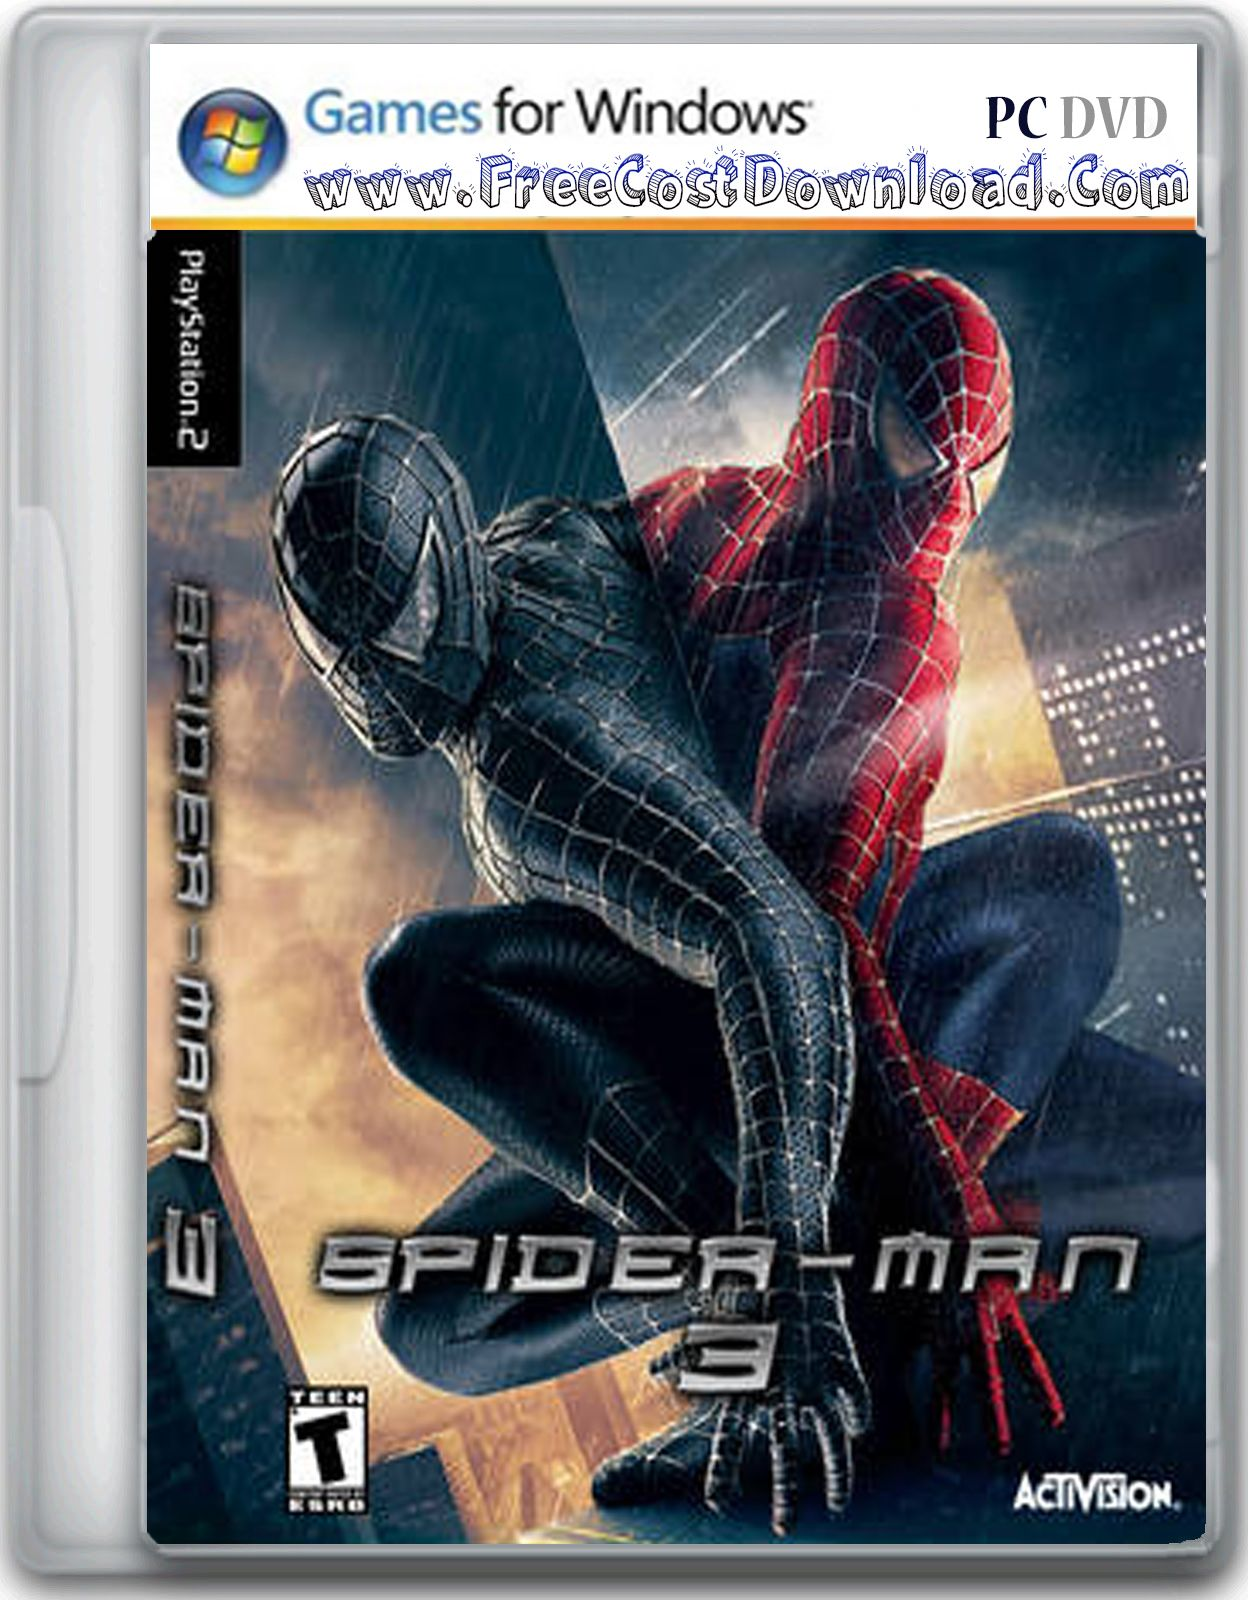 spider-man 3 is an action game loosely based on the spider-man 3